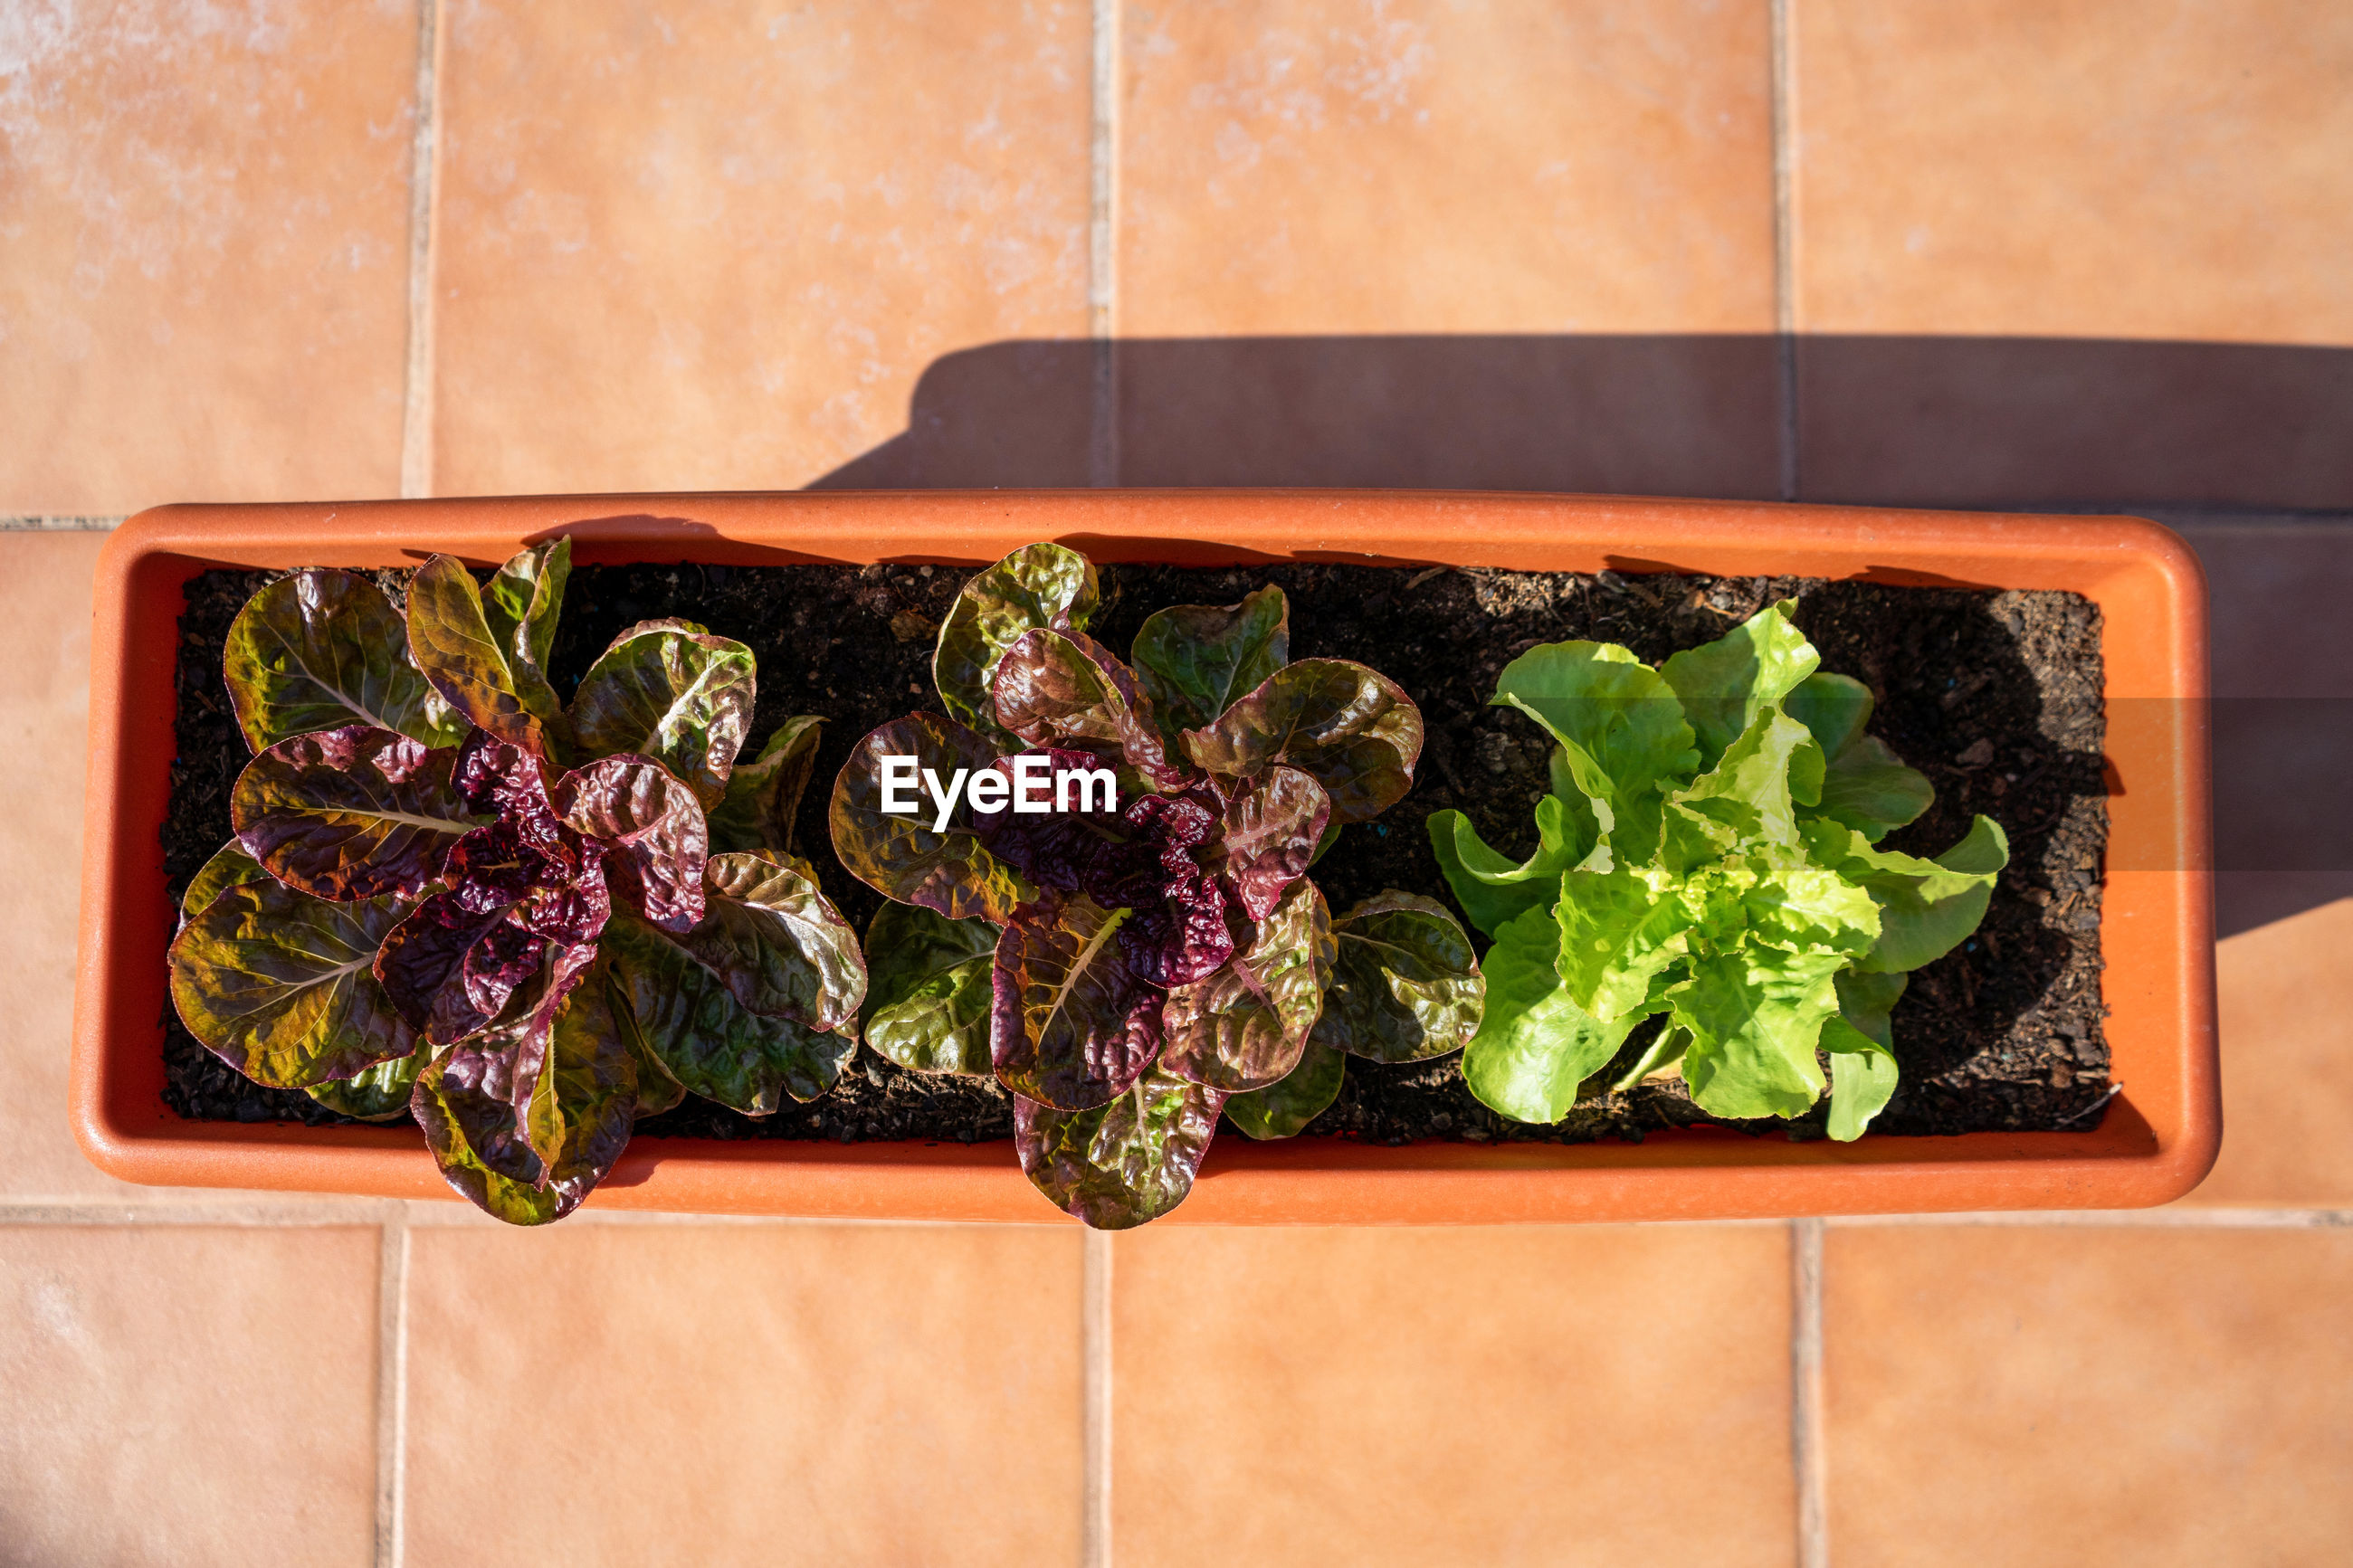 HIGH ANGLE VIEW OF FRESH VEGETABLES ON PLANT AGAINST WALL